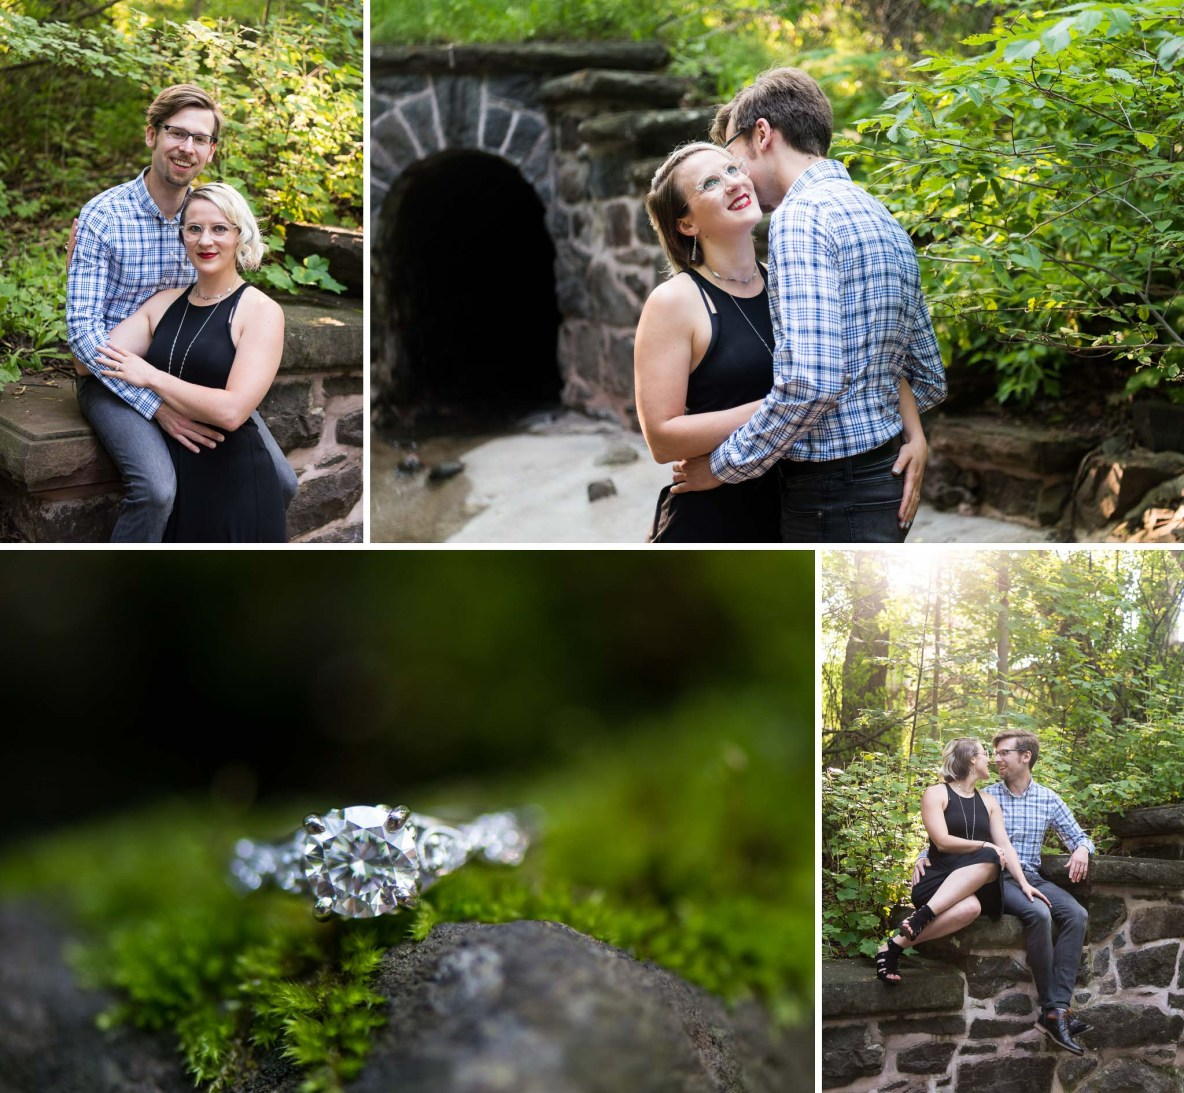 Photos of the engaged couple outside in nature.